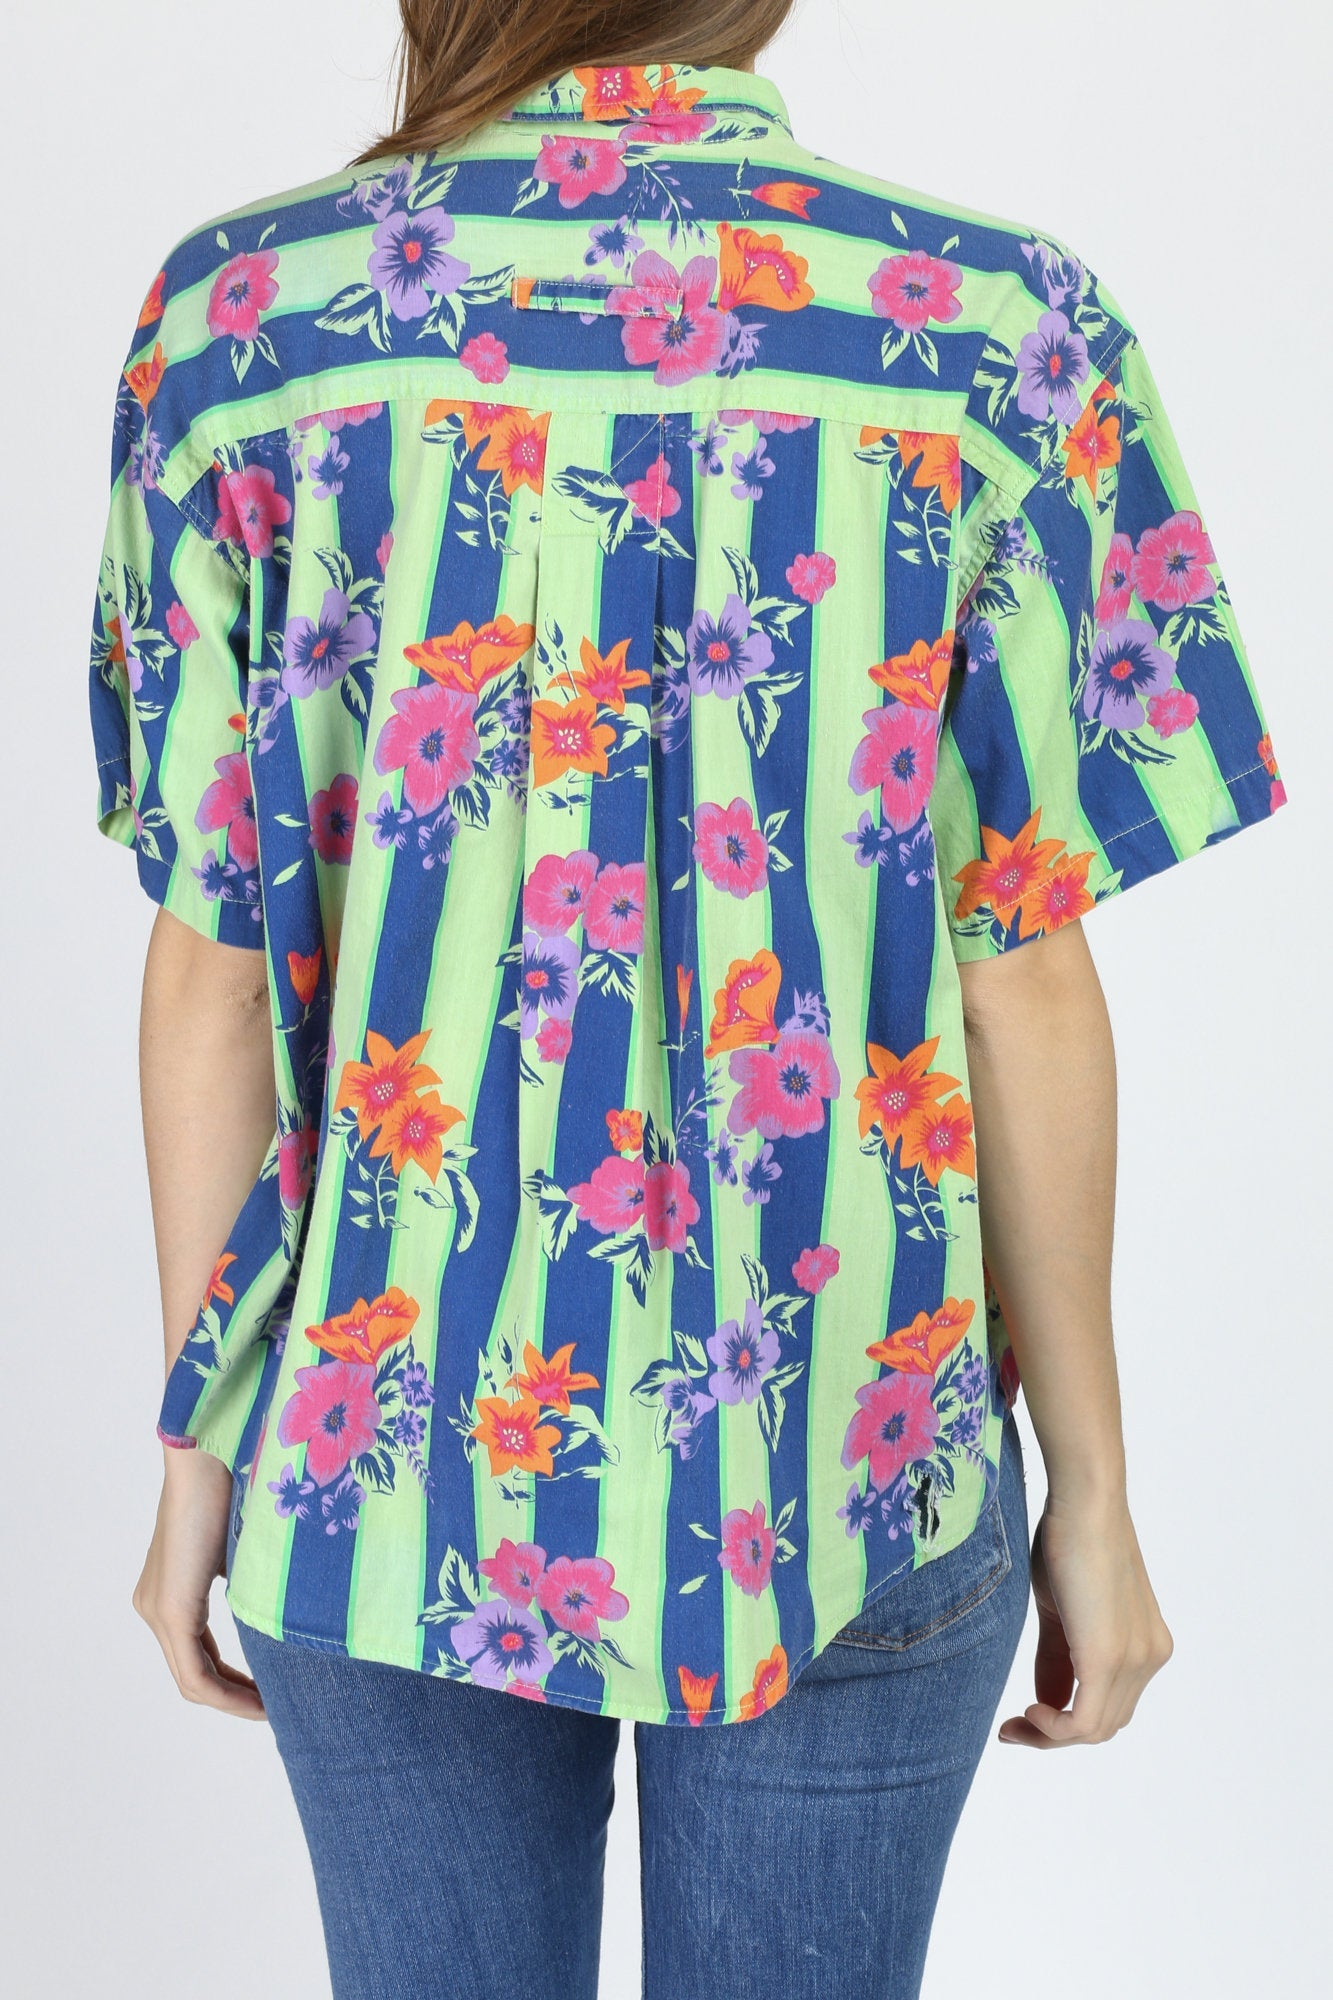 90s Bright Striped Floral Shirt - Large